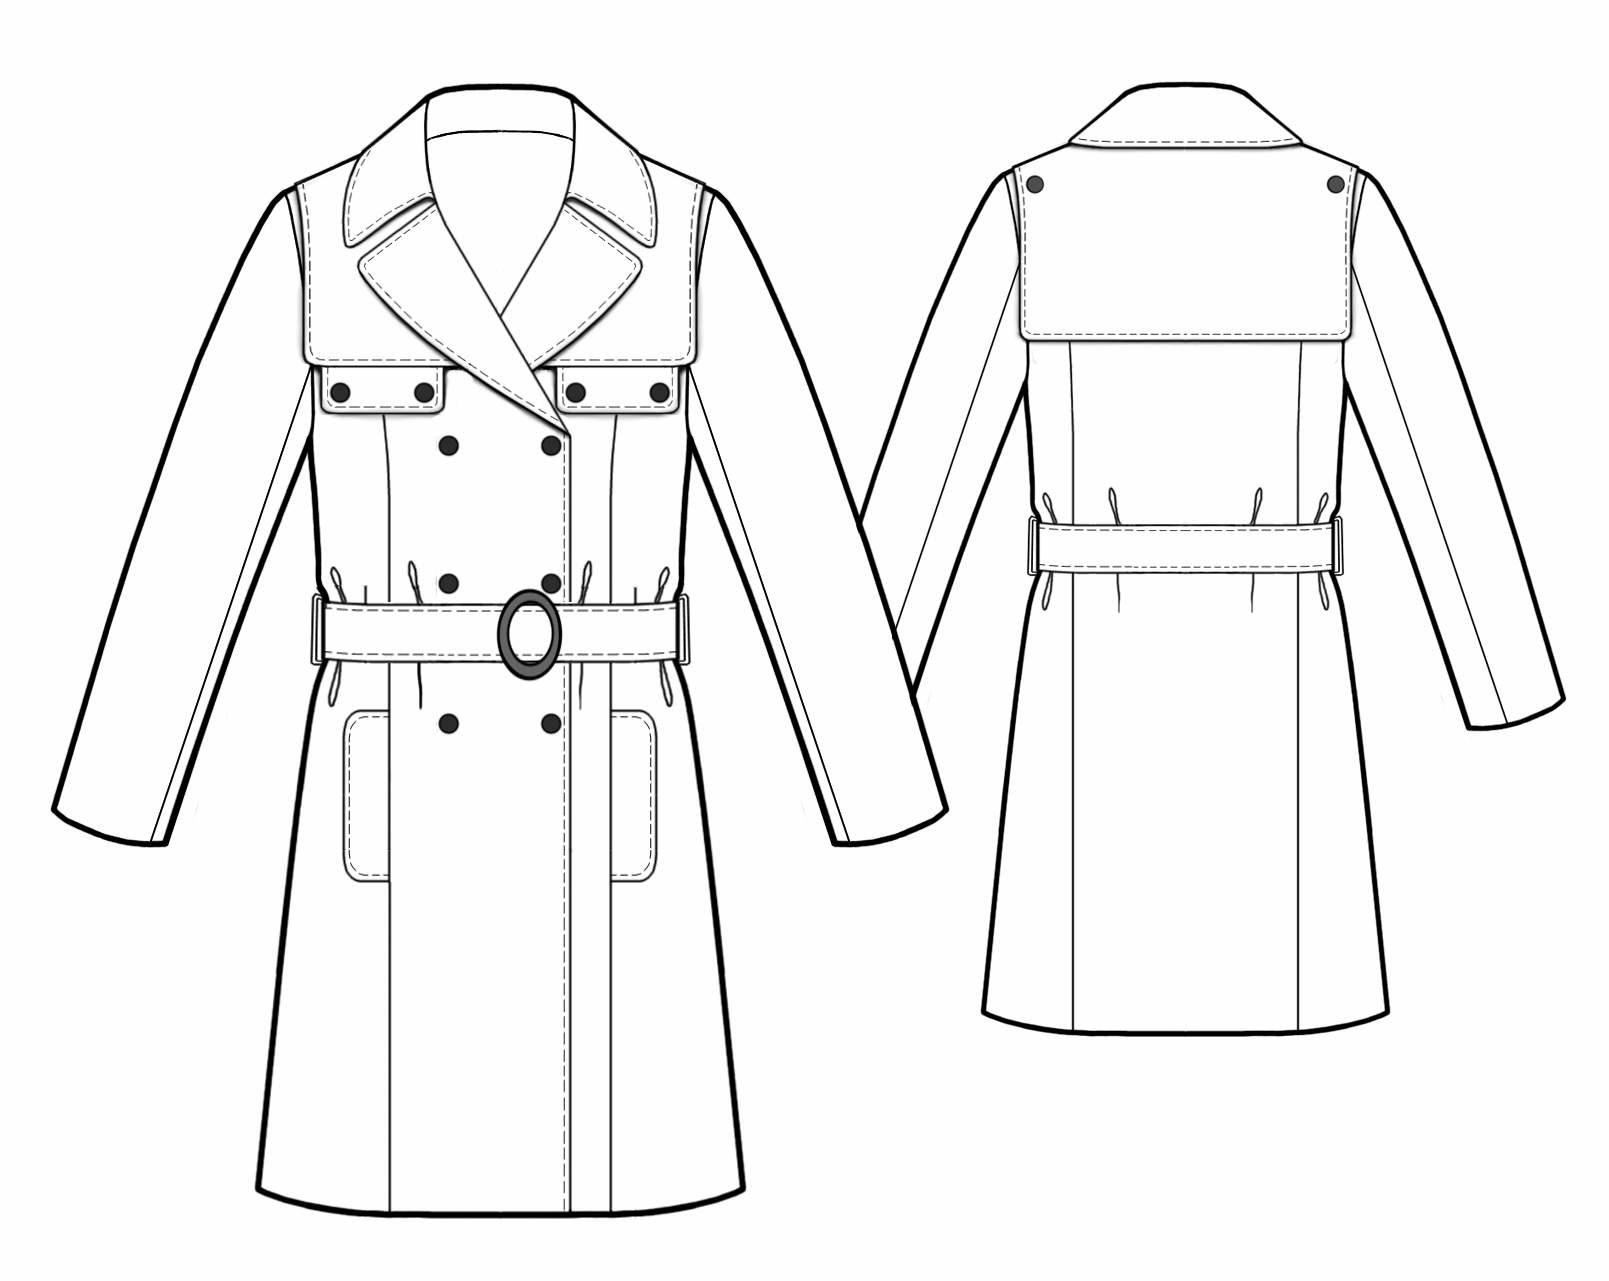 1609x1281 Collection Of Trench Coat Technical Drawing High Quality